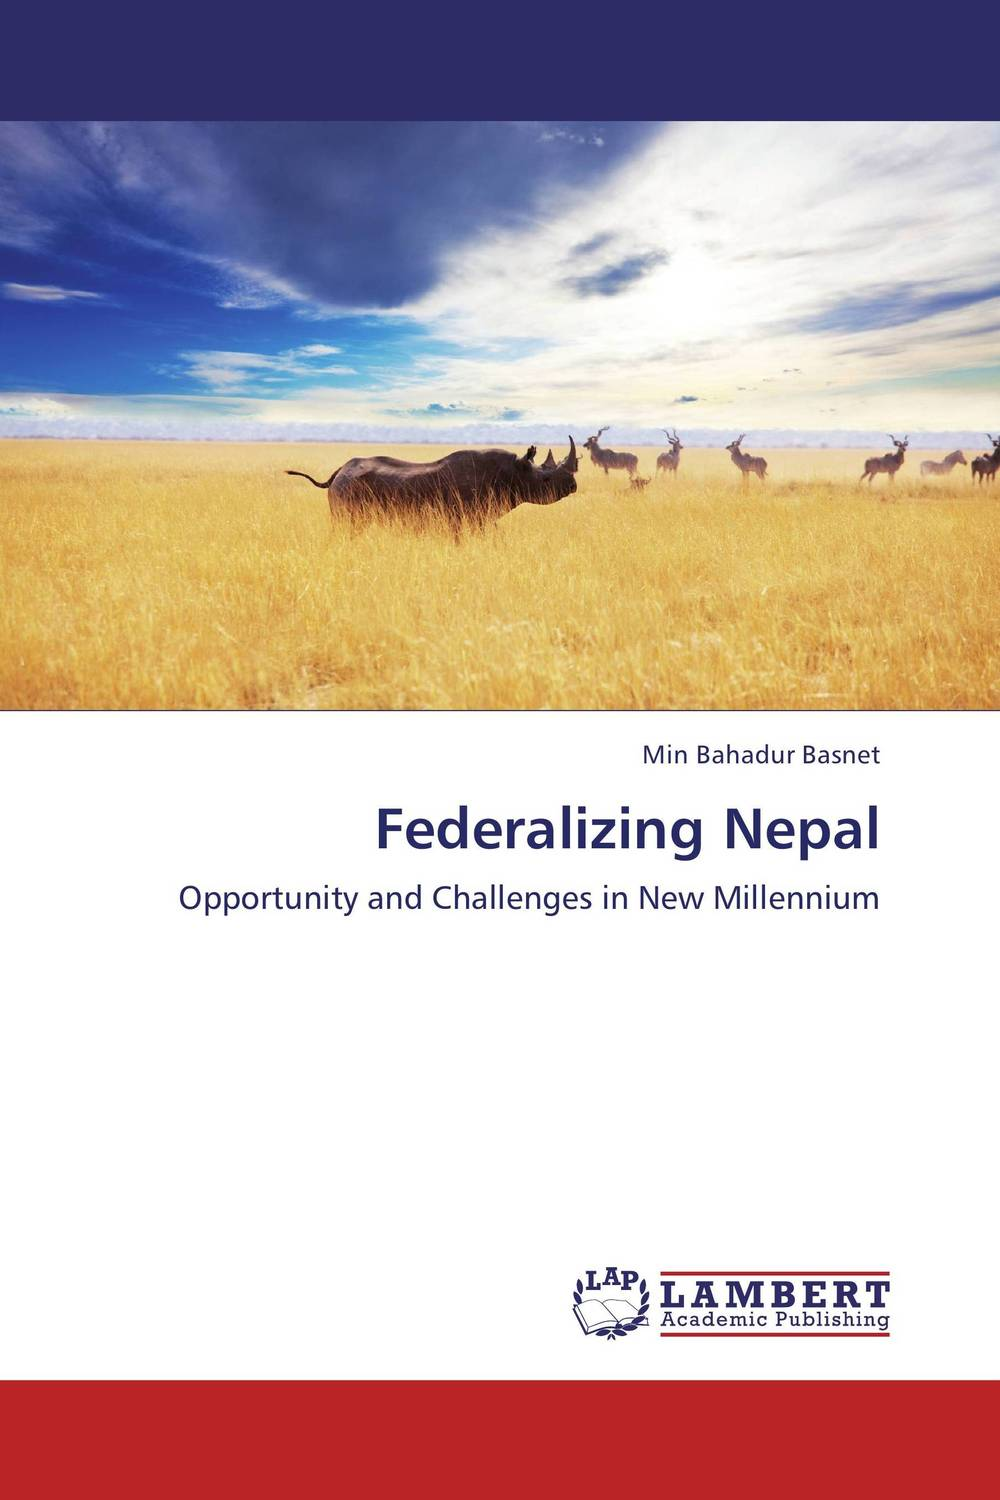 egovernance in nepal perspectives opportunities and